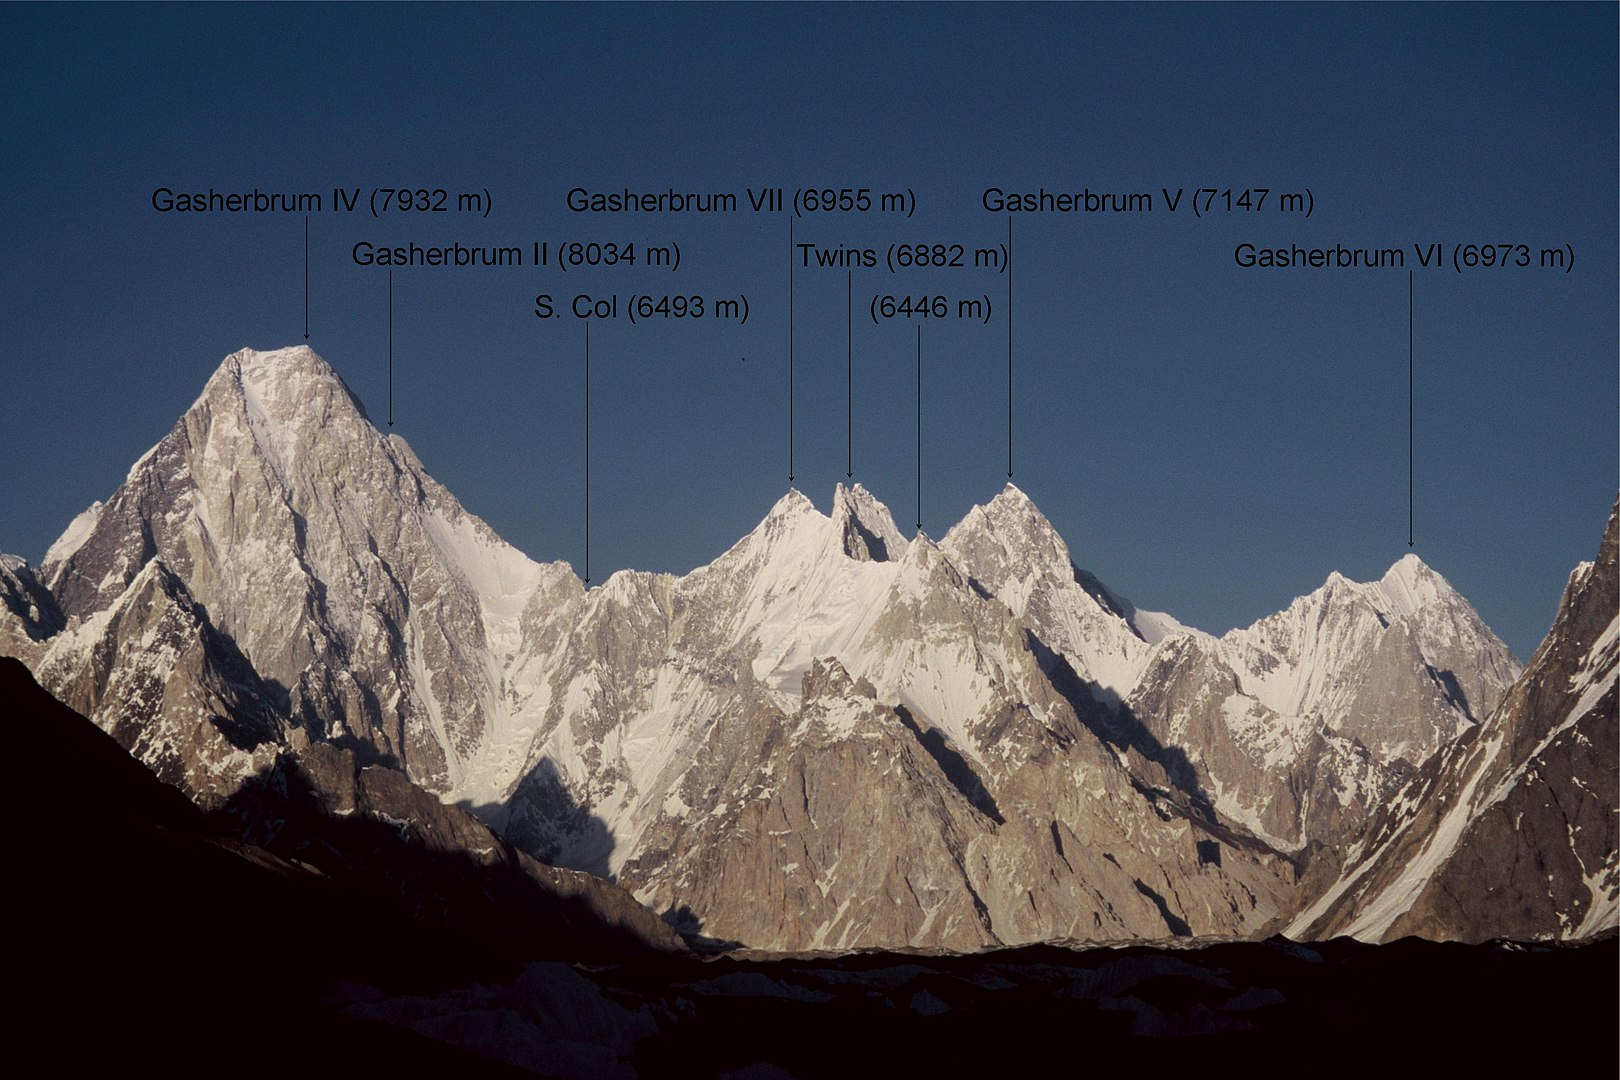 The west faces of Gasherbrum IV, V, VI, and VII. The peak of Gasherbrum II is just barely visible behind the southern ridge of Gasherbrum IV. Gasherbrum I (Hidden Peak) is hidden behind Gasherbrum V. [Photo] Florian Ederer, Wikimedia